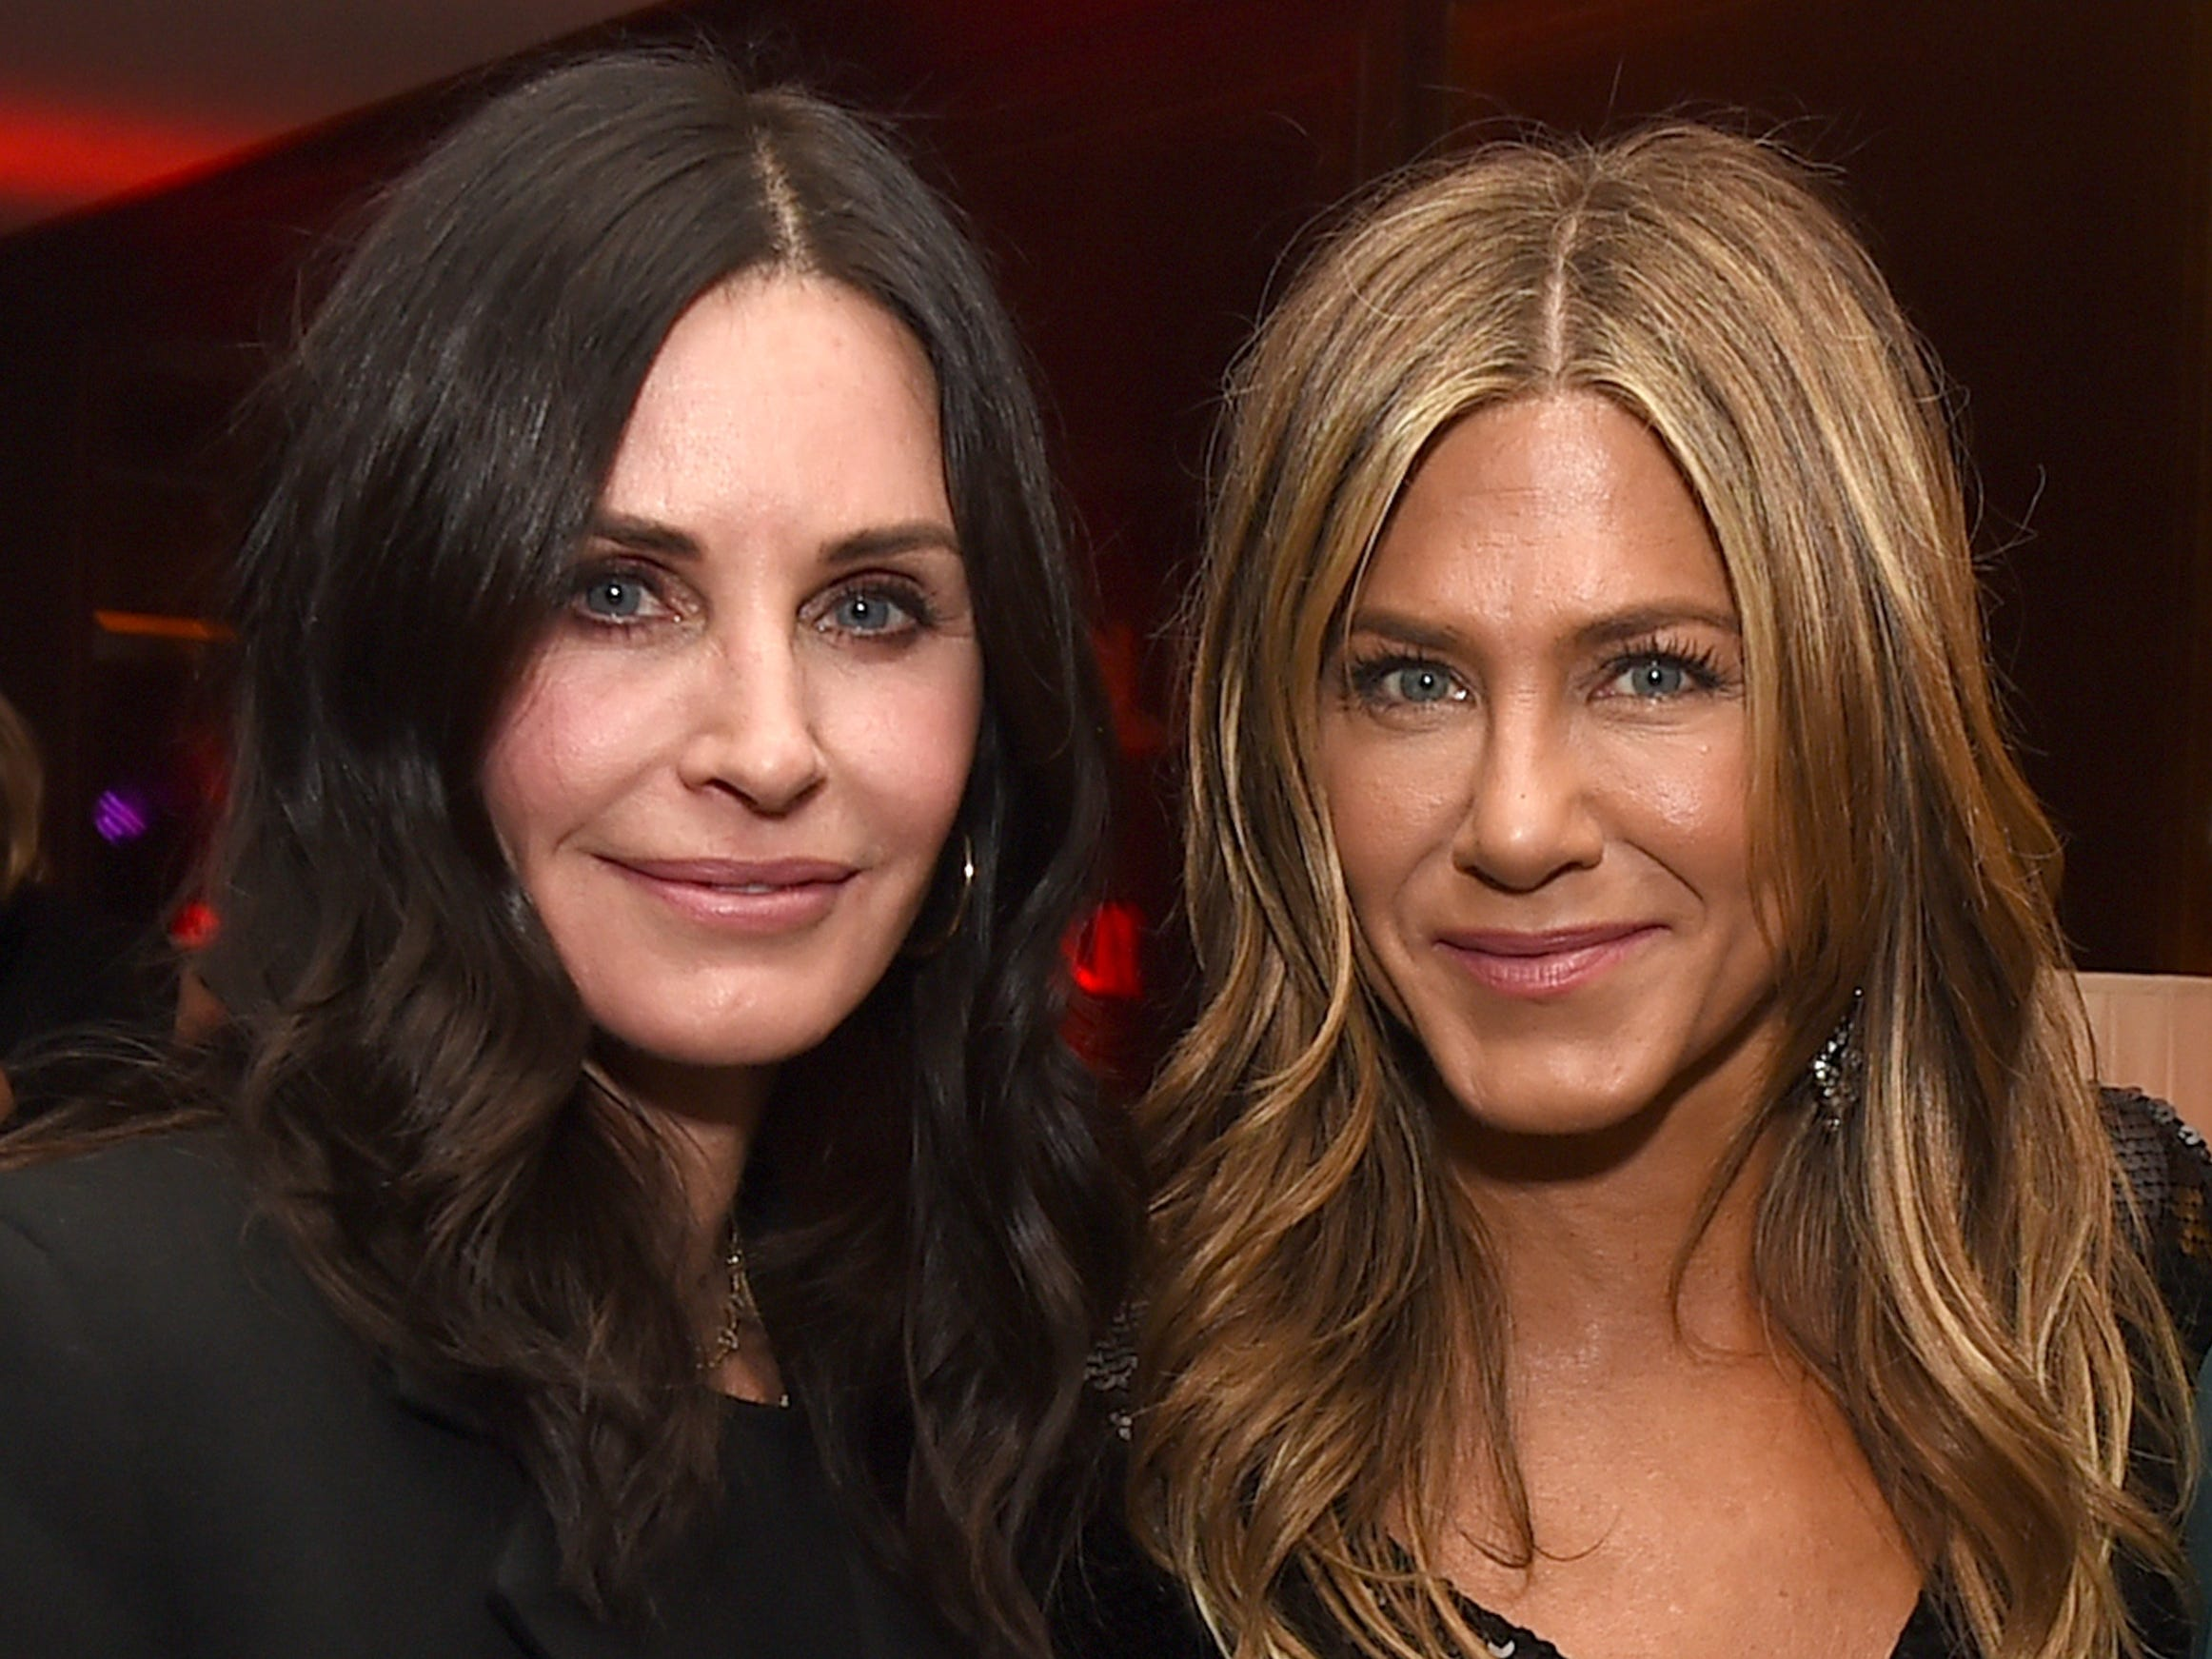 """LOS ANGELES, CA - DECEMBER 06:  Courteney Cox (L) and Jennifer Aniston pose at the after party for the premiere of Netflix's """"Dumplin'"""" at Sunset Tower on December 6, 2018 in Los Angeles, California.  (Photo by Kevin Winter/Getty Images) ORG XMIT: 775264140 ORIG FILE ID: 1069334698"""